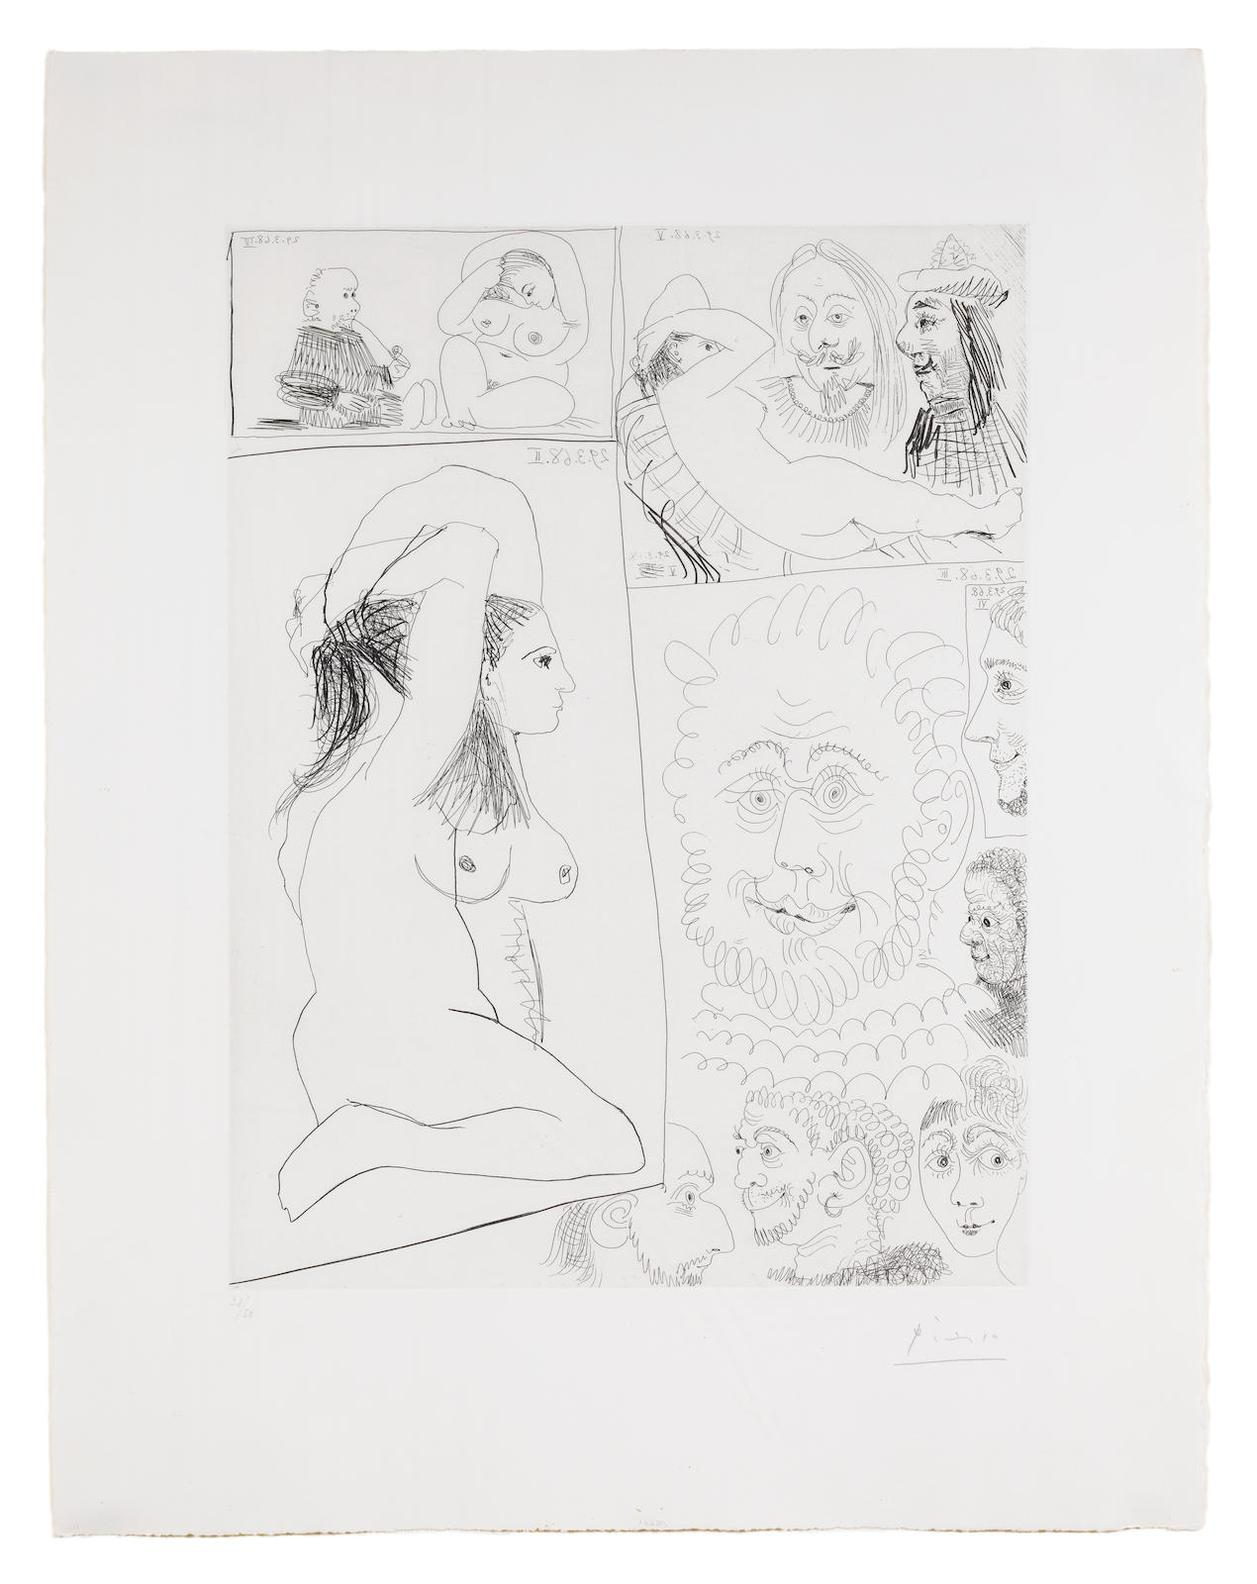 Pablo Picasso-Bande Dessinee, from Series 347 (Bloch 1491; Baer 1507)-1968